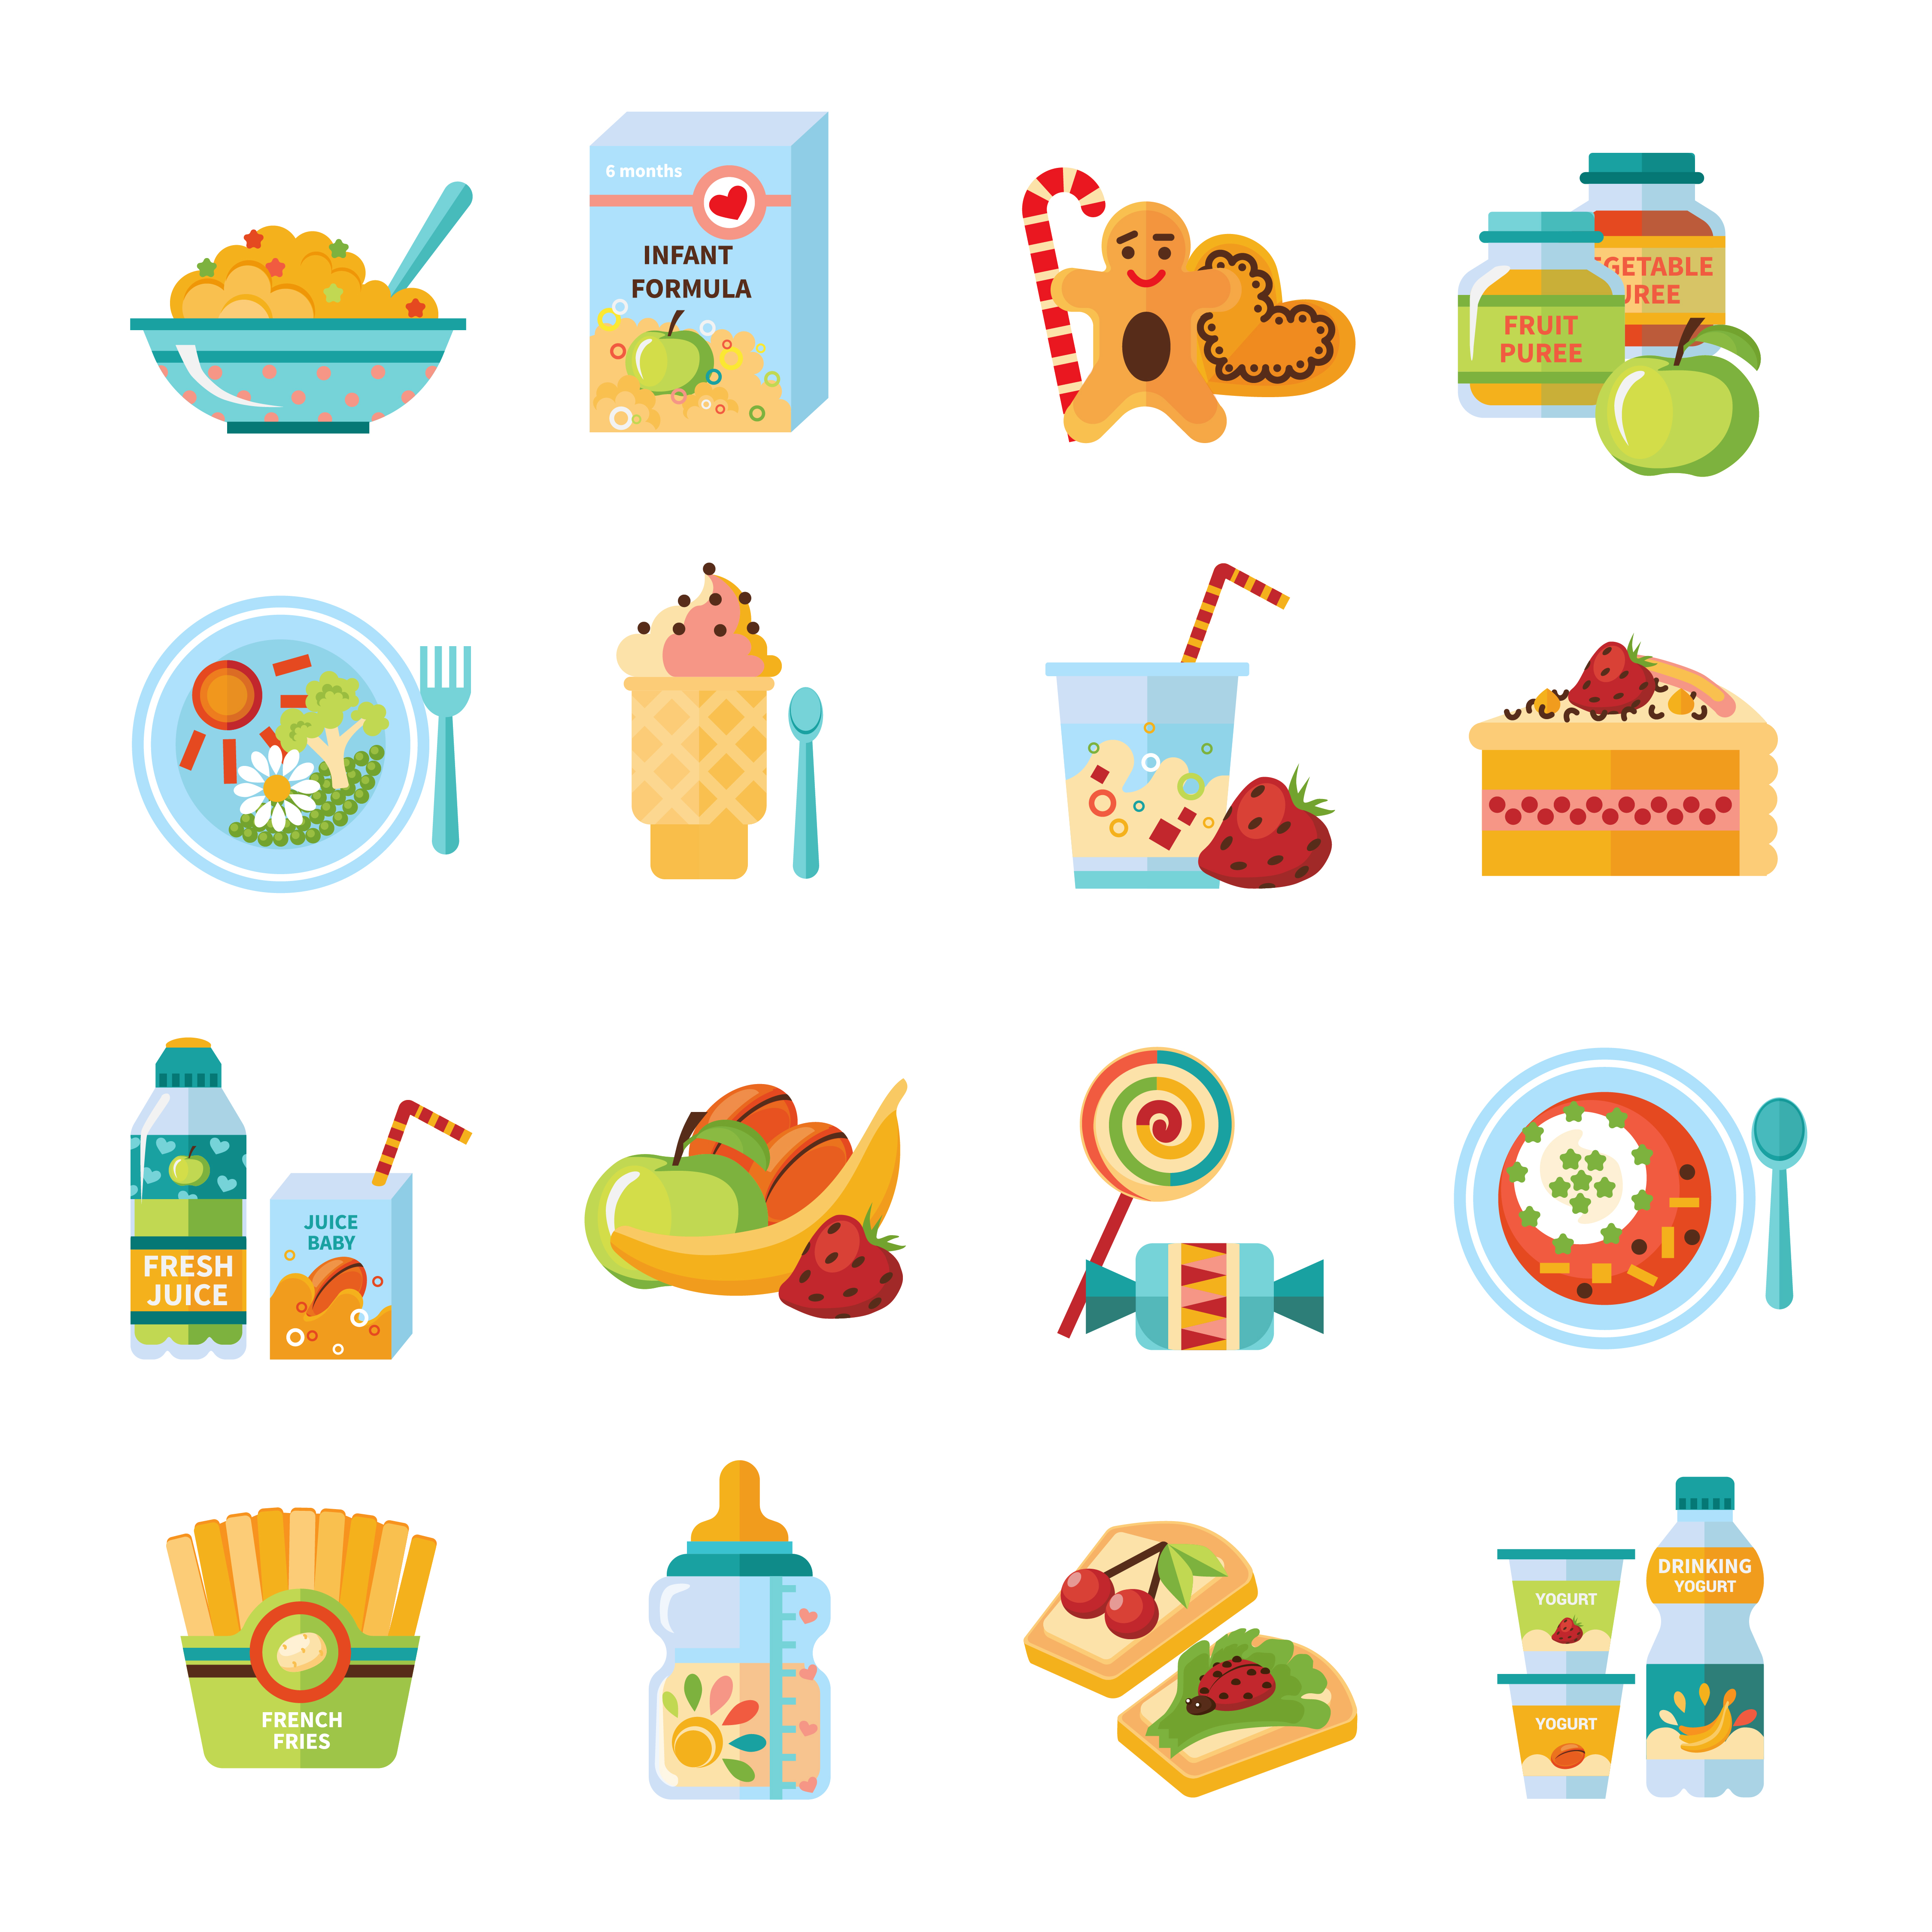 Infant Baby Food Flat Icons Set - Download Free Vectors ...